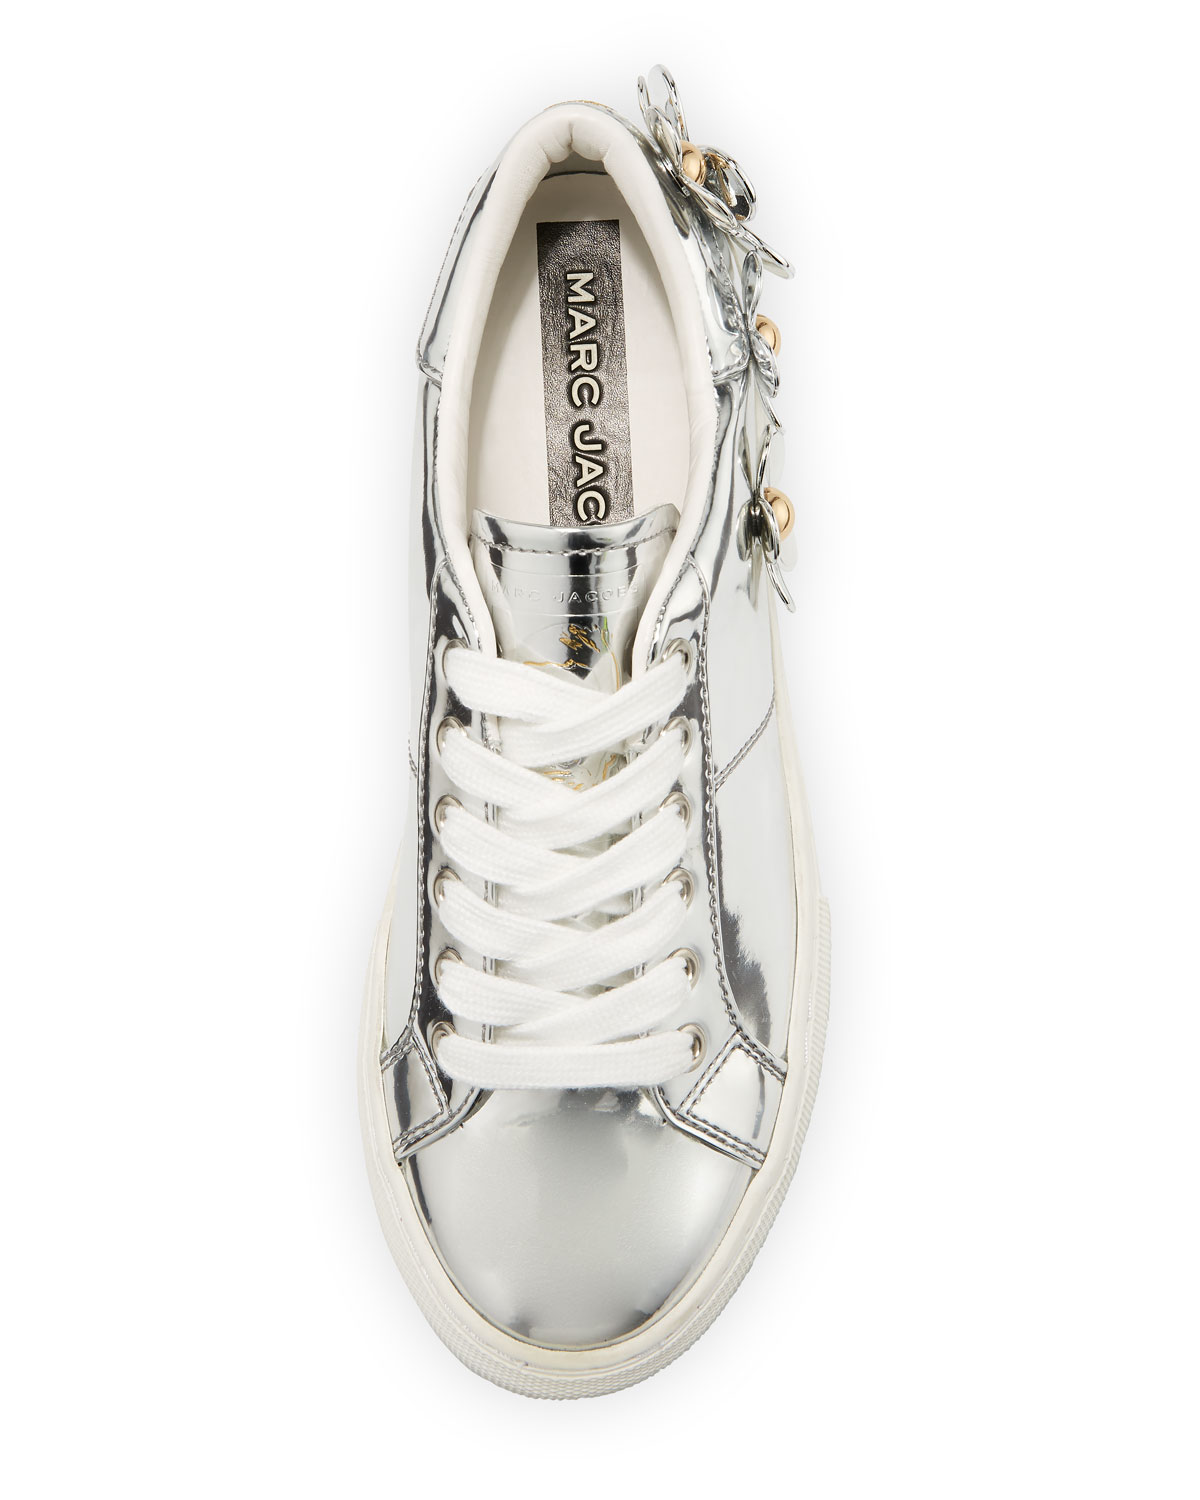 Marc Jacobs Daisy Metallic Low-Top Sneakers with Studded Flowers